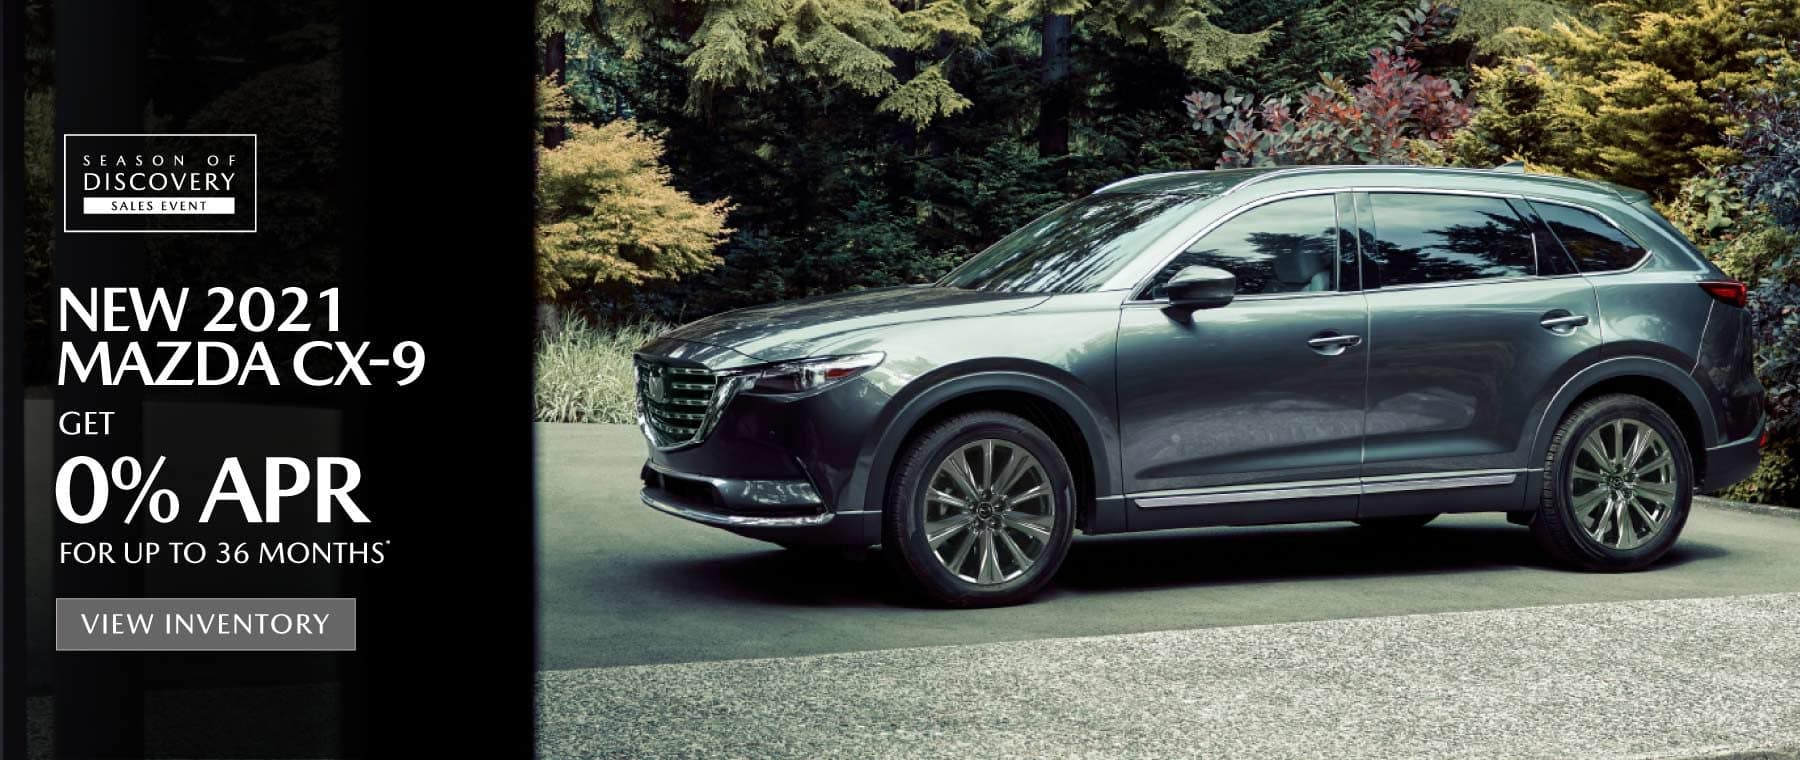 2021 Mazda CX-9   0% APR for up to 36 months   View Inventory